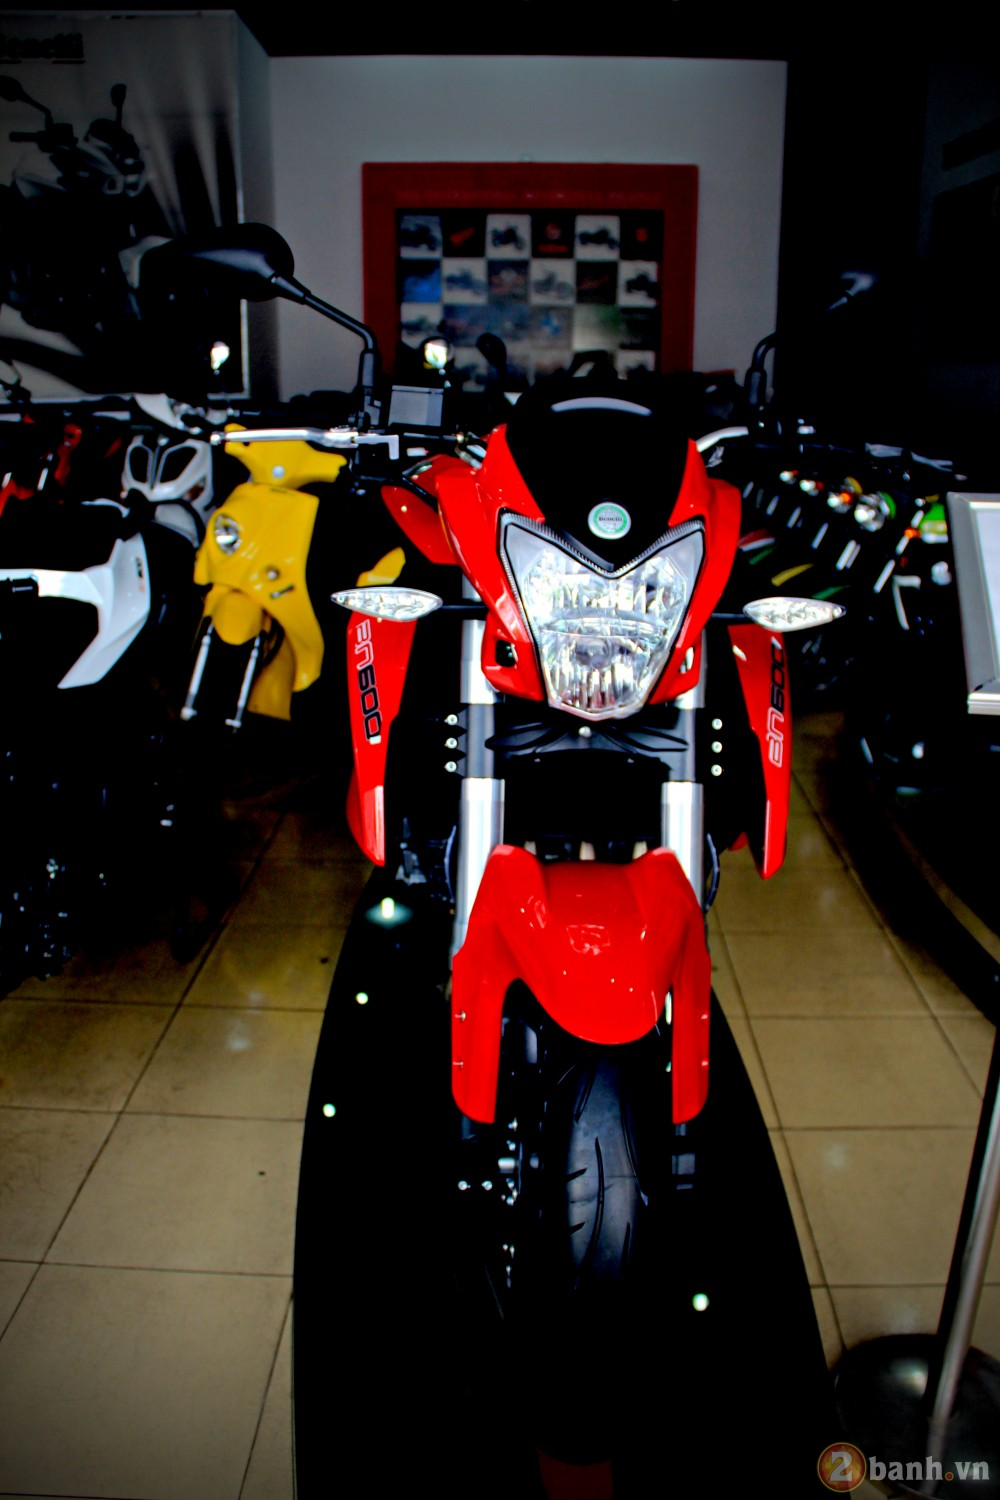 Benelli bn600i abs - 1